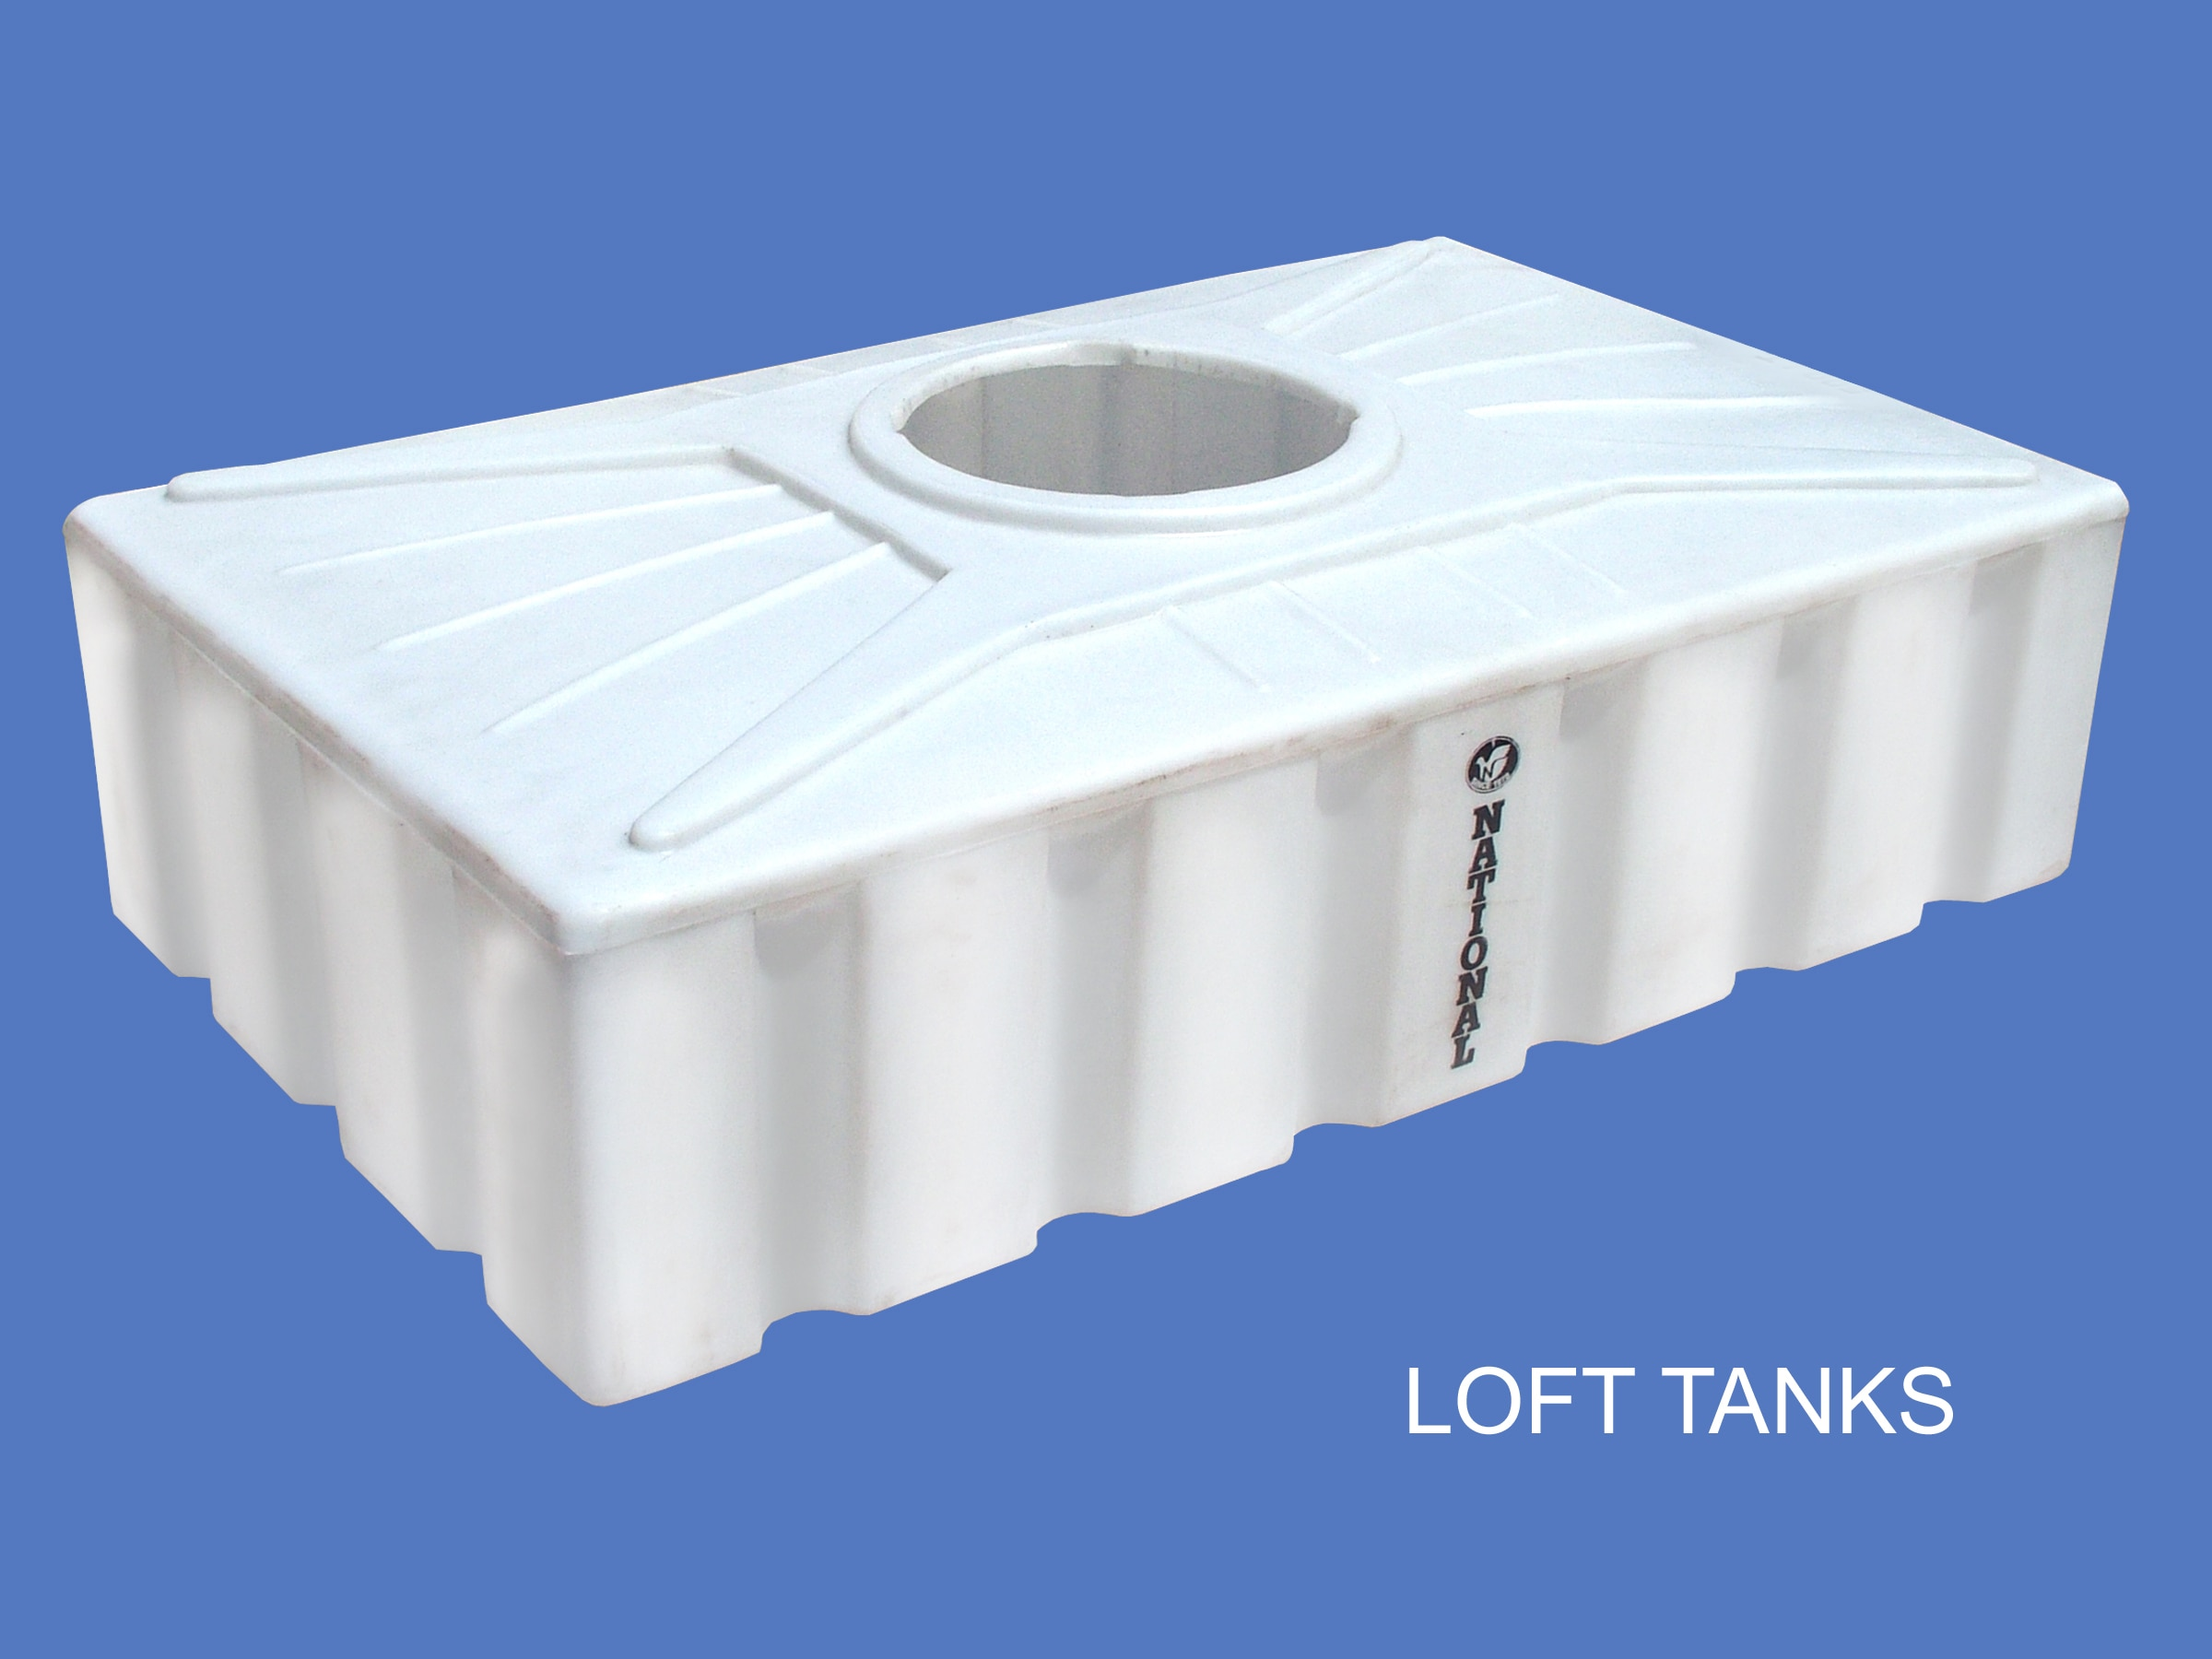 We are Leading Manufacturer of Loft Tanks in Ahmedabad, Gujarat, India These offered plastic tanks are obtainable in cylindrical, vertical, horizontal, round, hexagonal and rectangular shapes and 100 liter to 1000 liter capacity as per the application need.    For More Details Contact Us +91 9913757759  +91 9825010651